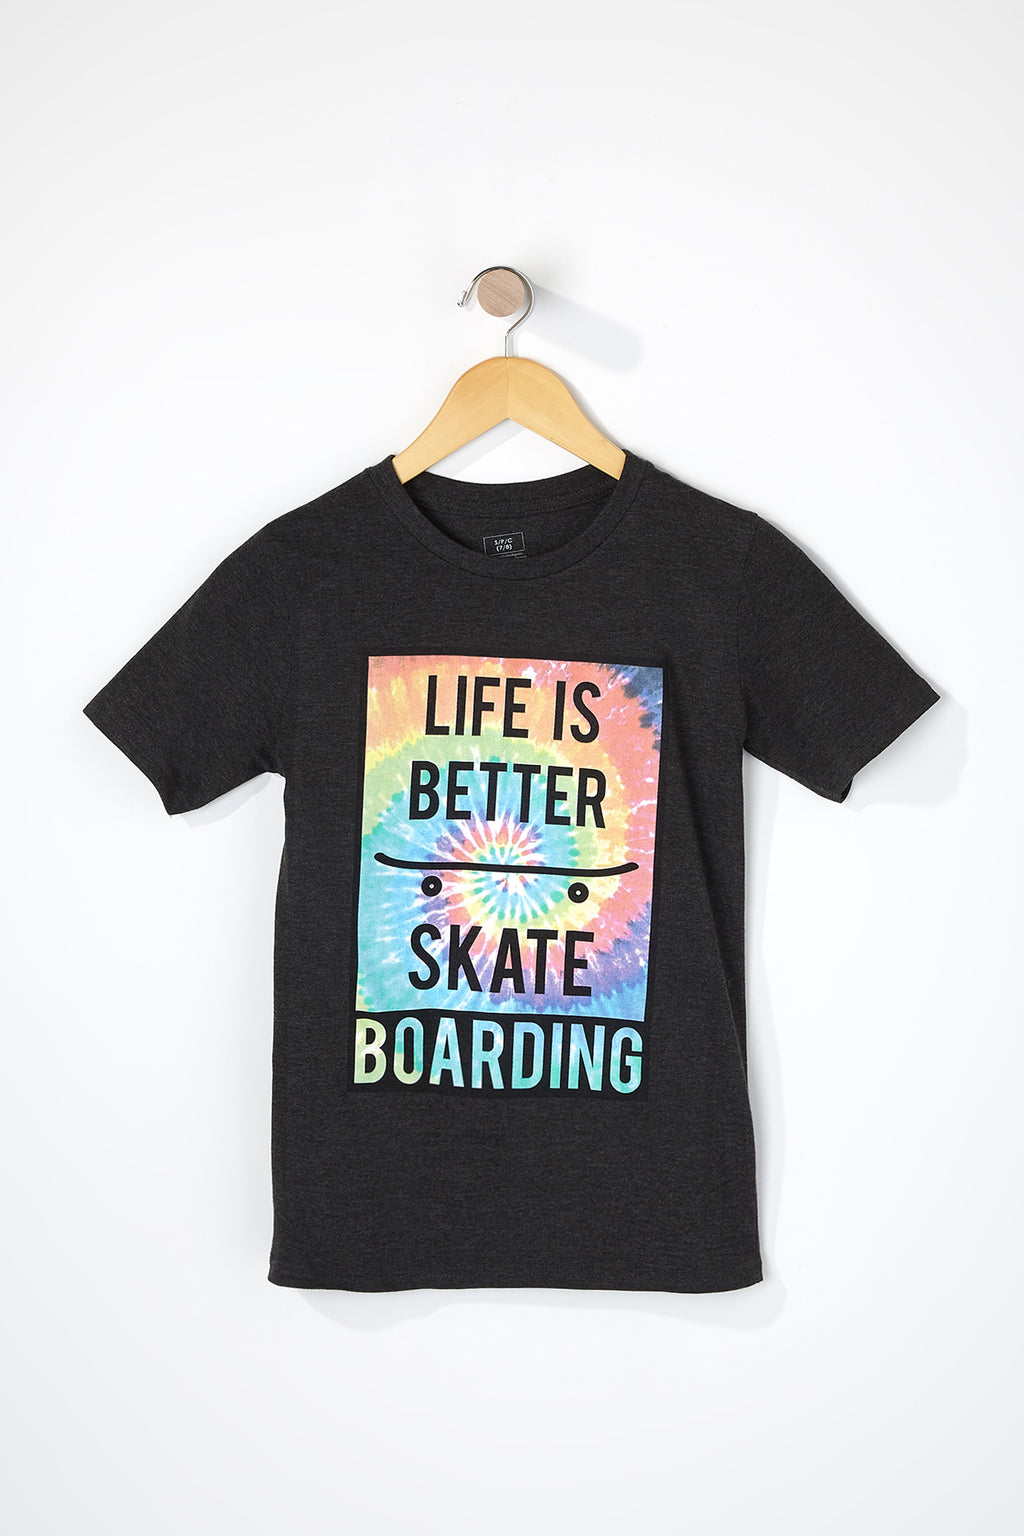 West49 Boys Tie-Dye Skateboarding Graphic T-Shirt